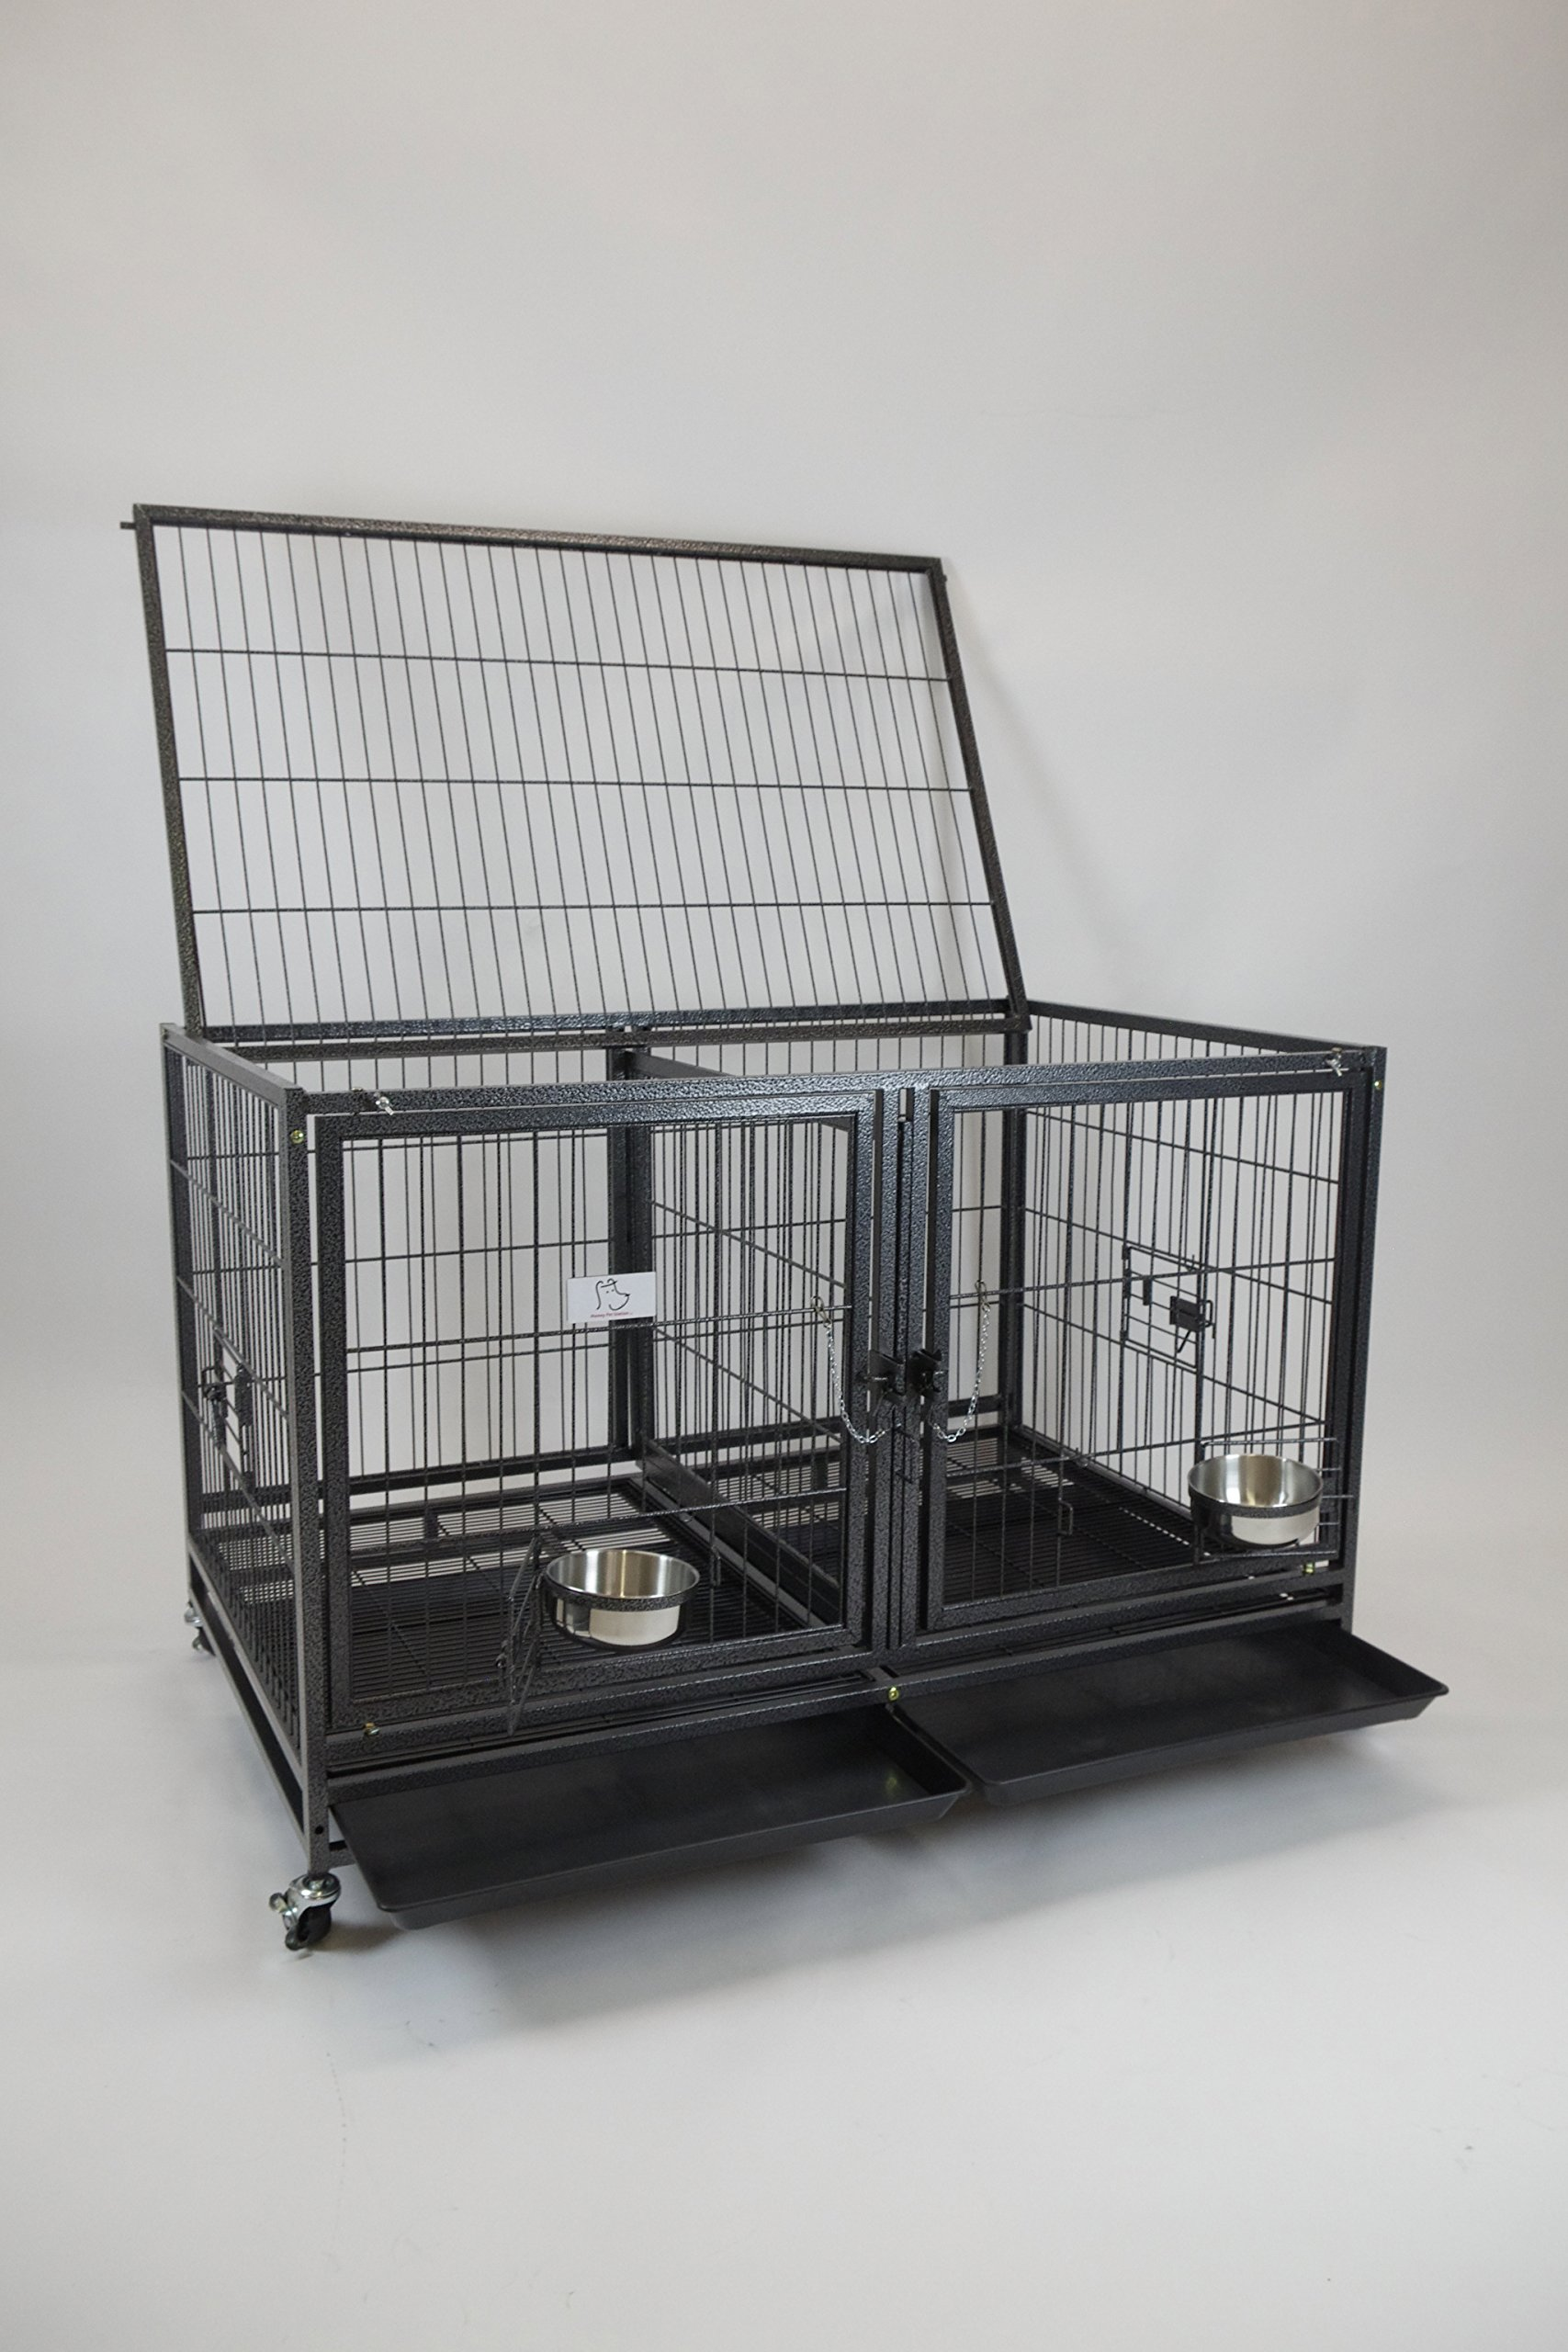 Homey Pet-43 All Metal Open Top Stackable Heavy Duty Cage(Upper) w/Floor Grid, Tray, Divider, and Feeding Bowl by Homey Pet (Image #4)